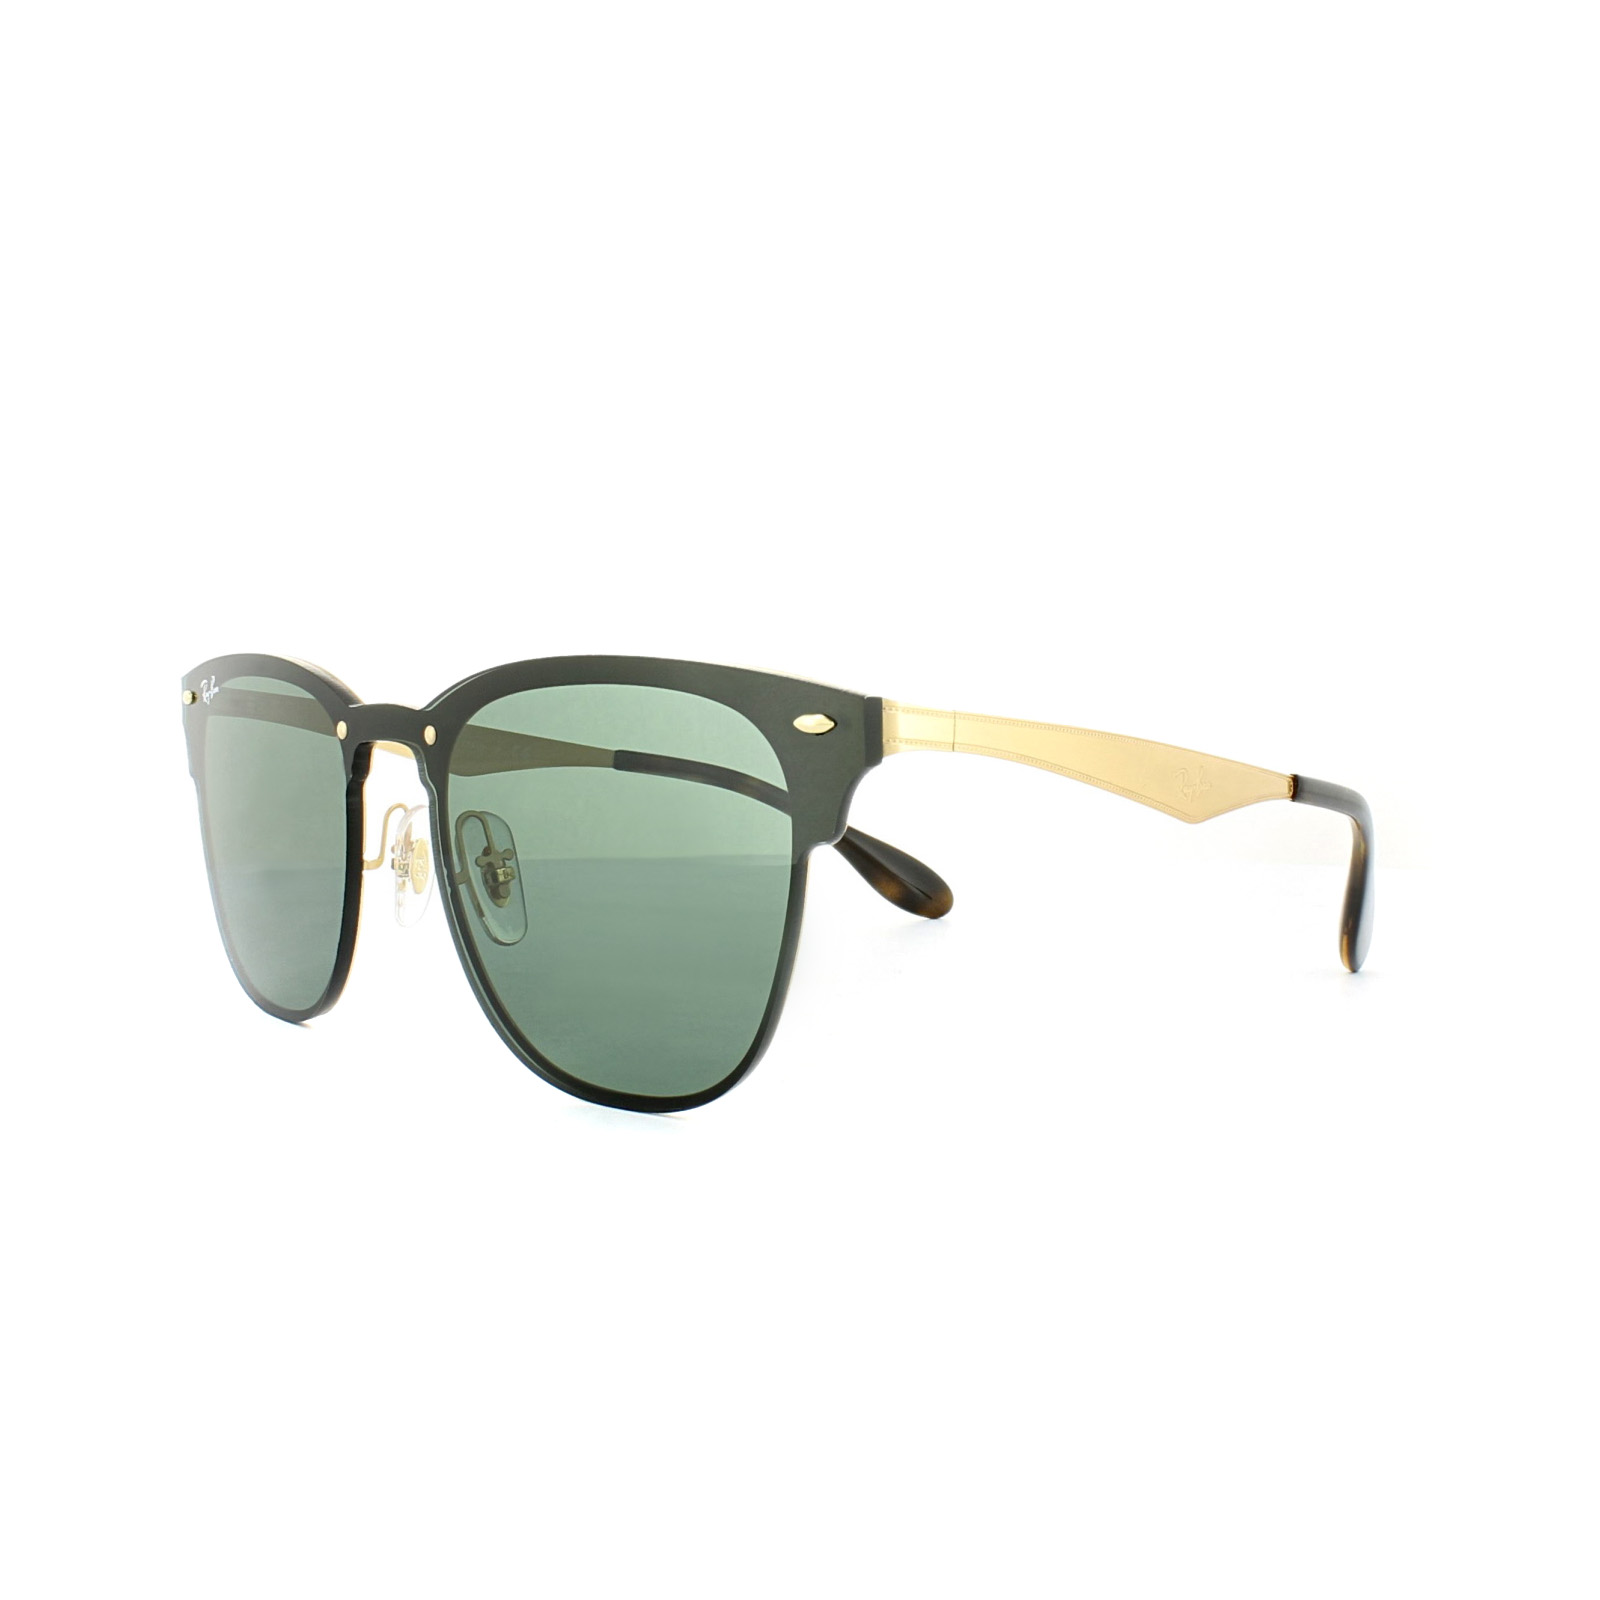 519c7d365c02a Sentinel Ray-Ban Sunglasses Blaze Clubmaster 3576N 043 71 Gold Green